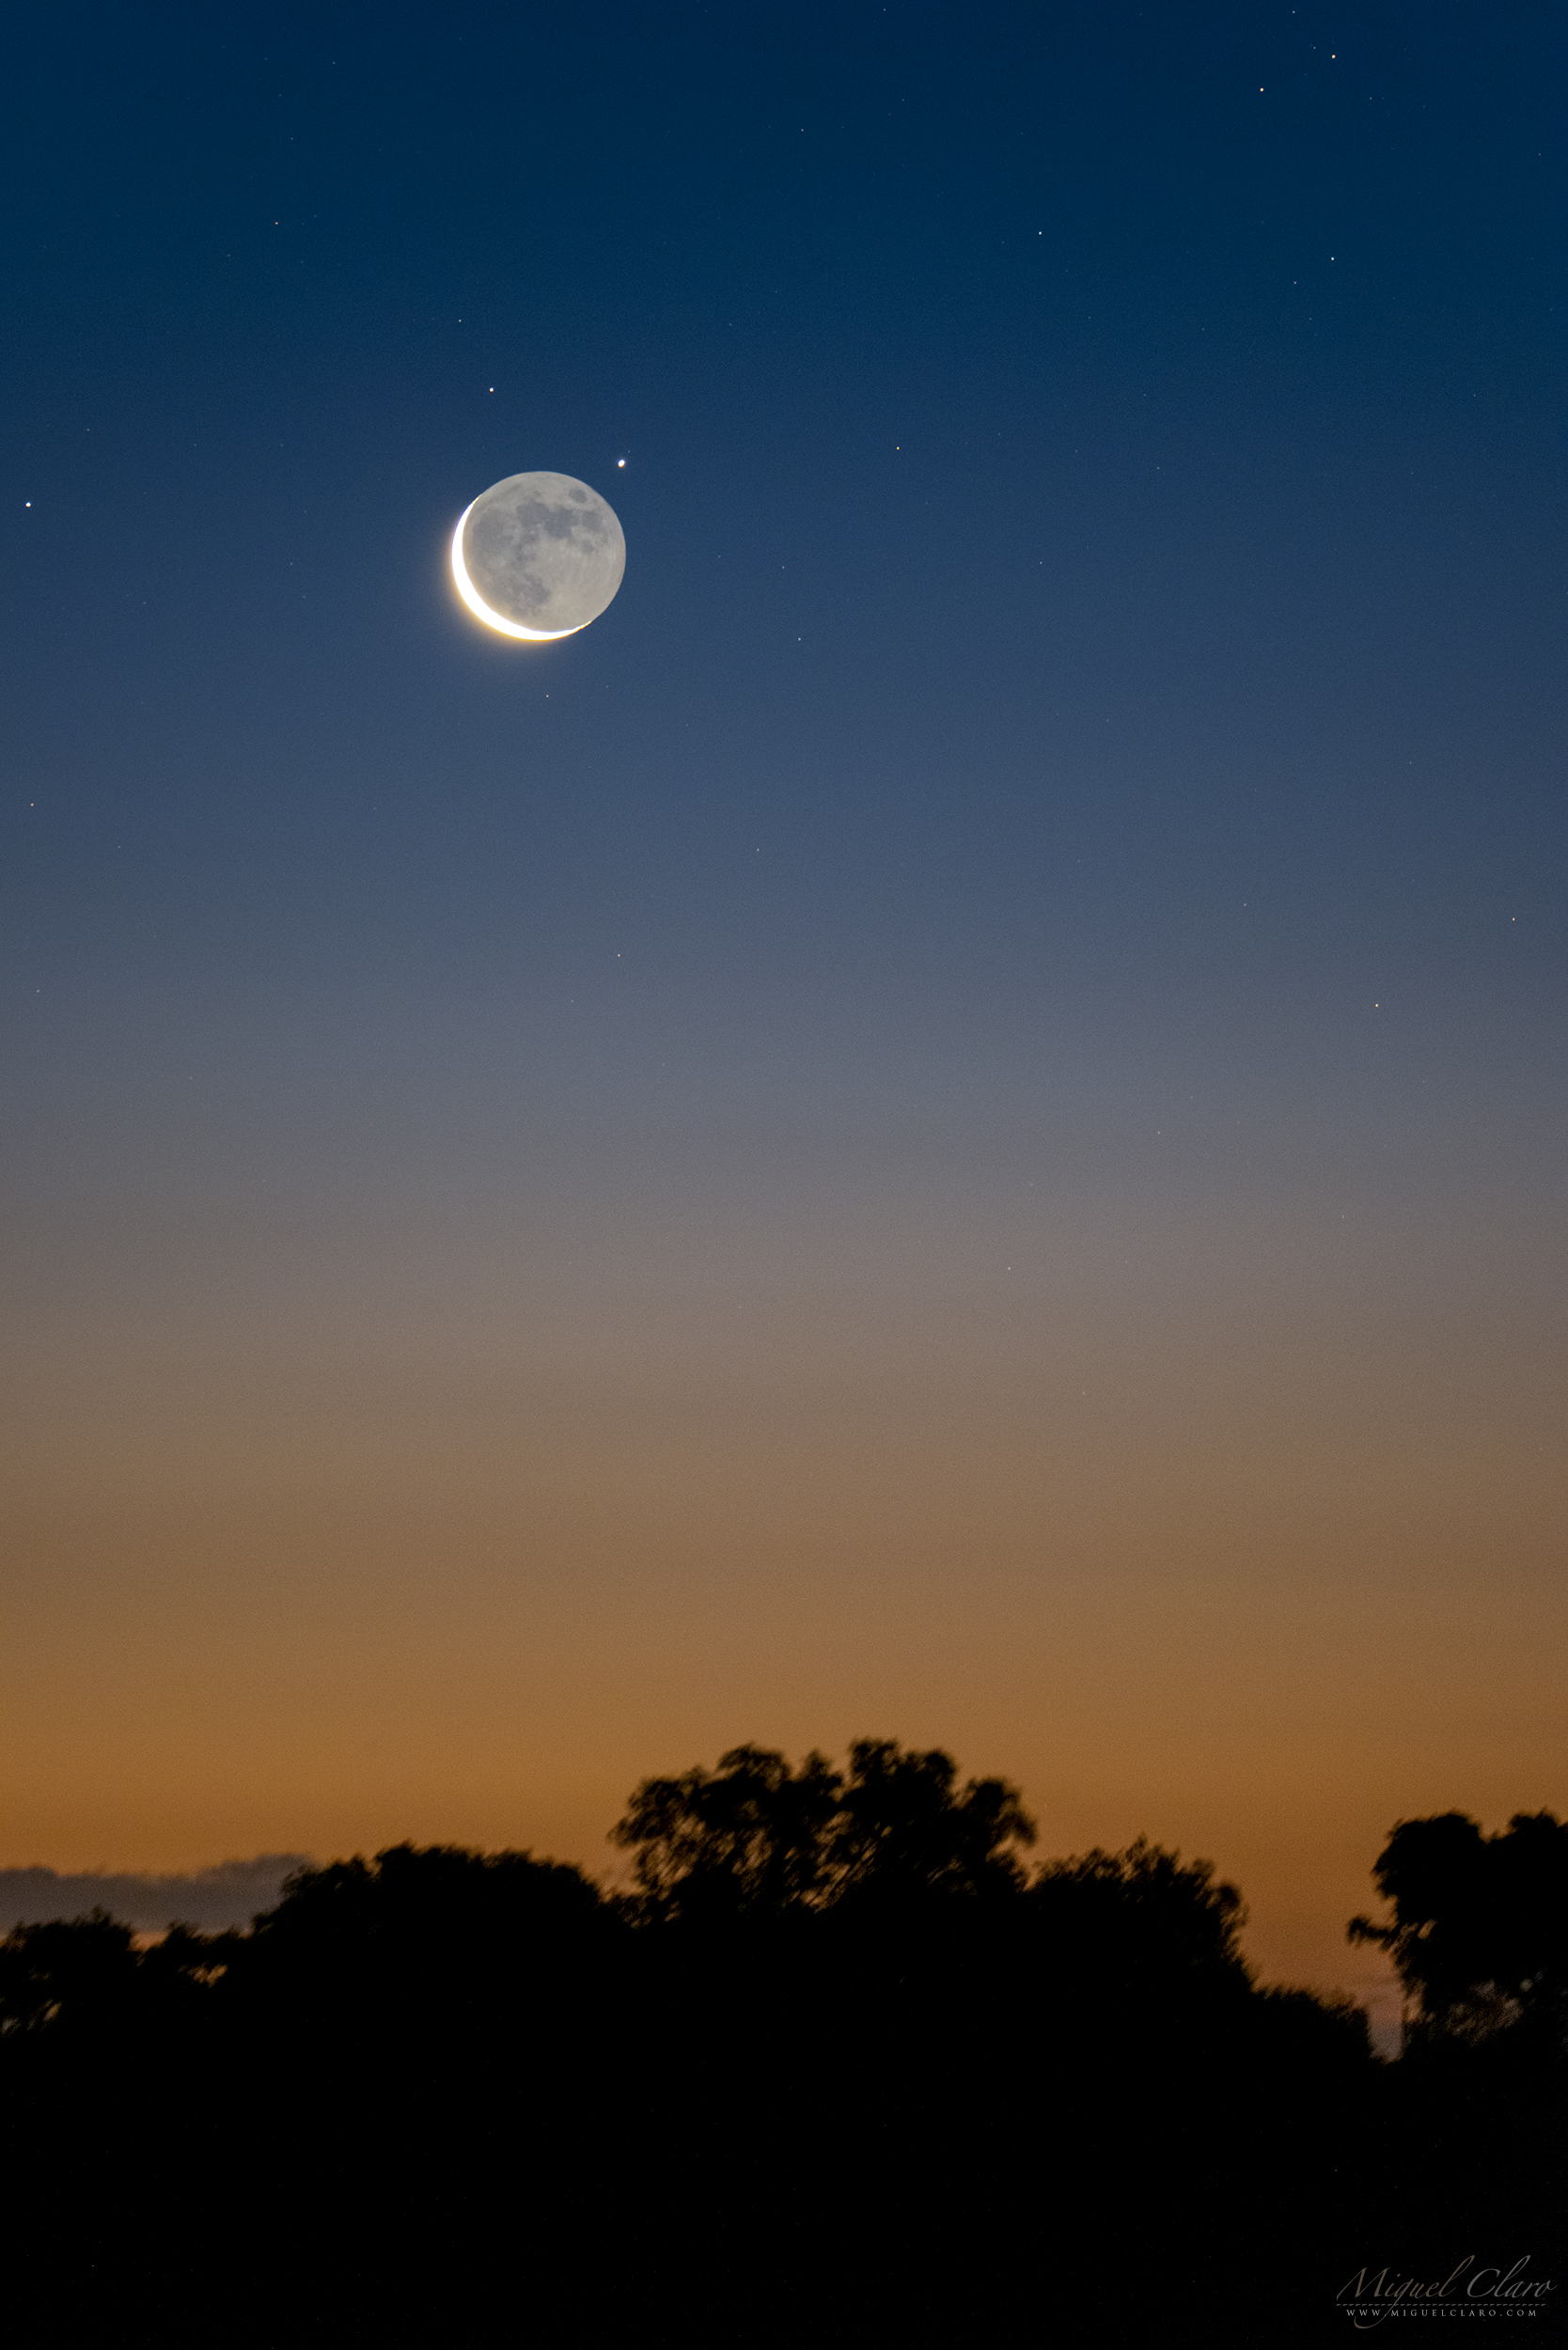 Moonlight Scenes Portfolio Categories Astrophotography By